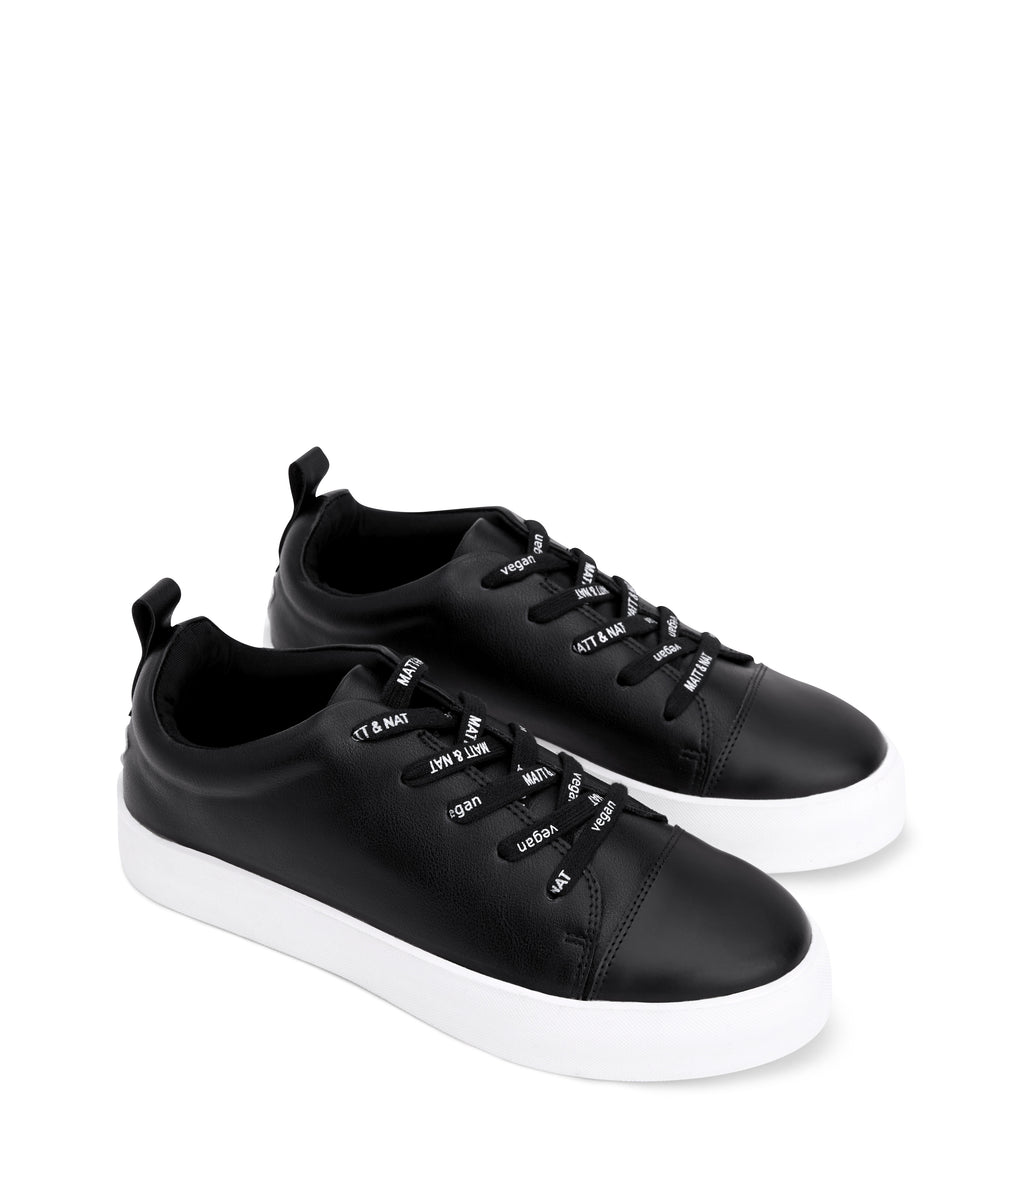 Matt & Nat MARCI Vegan Sneakers